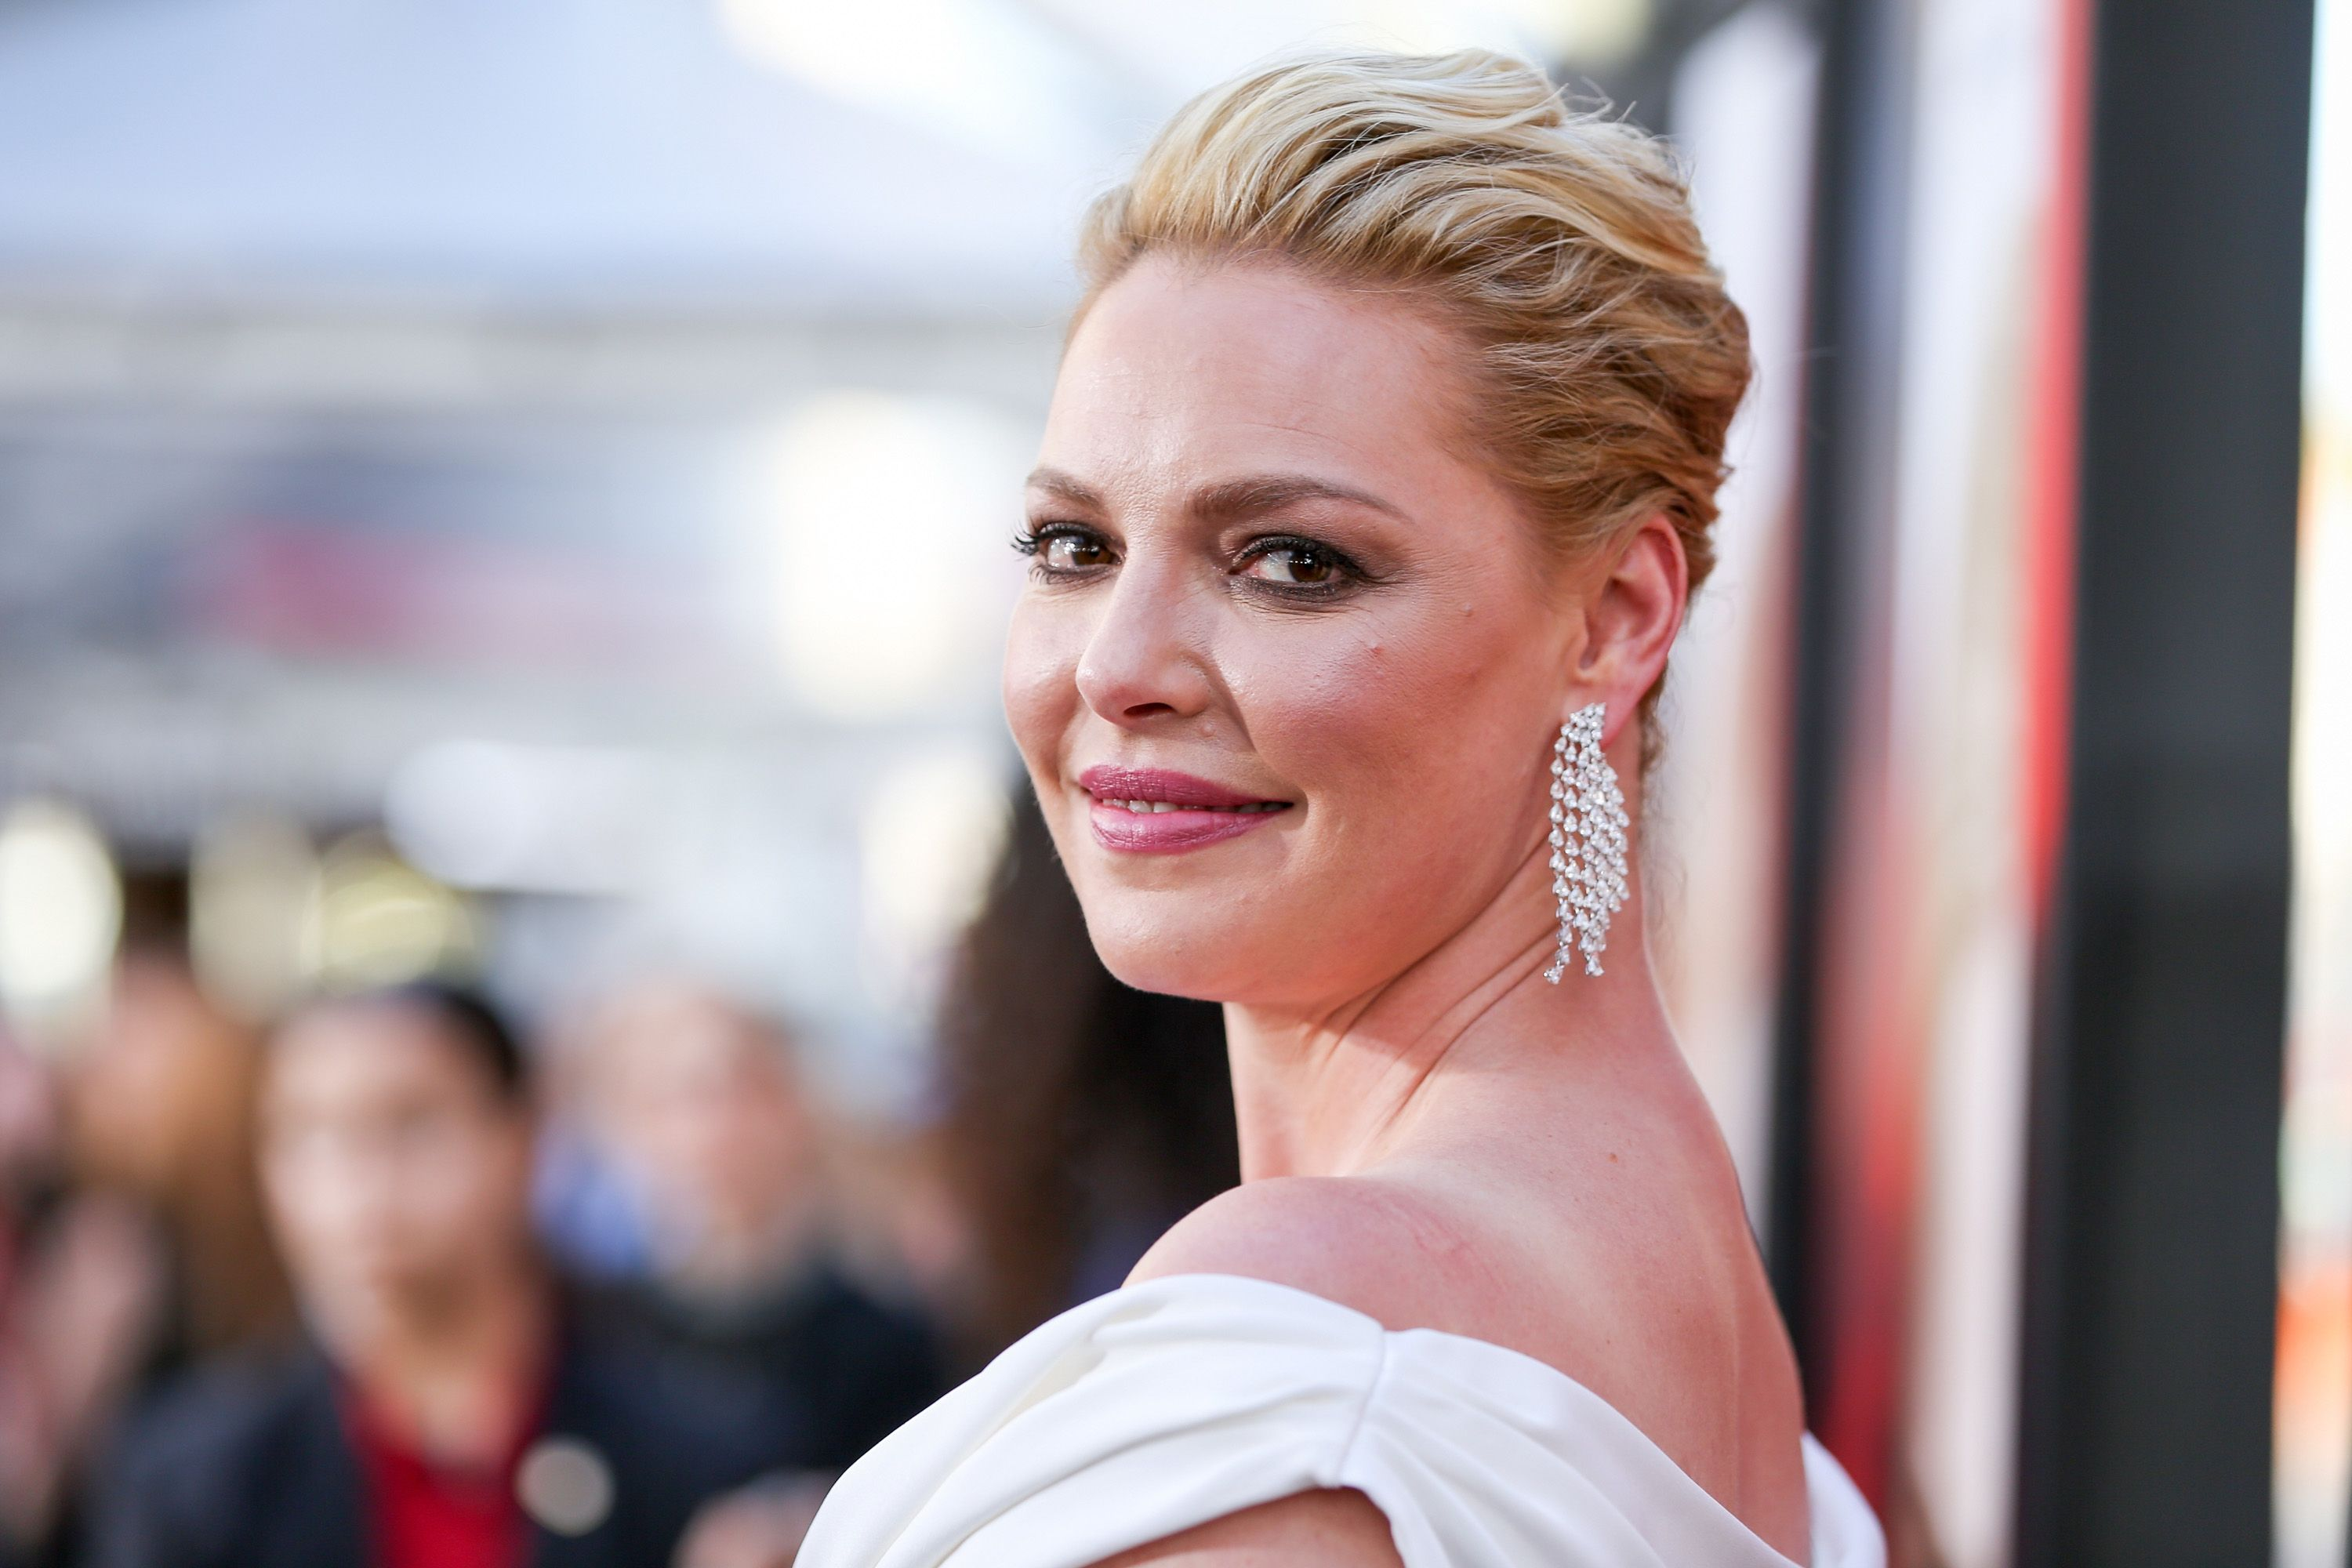 """Katherine Heigl at the premiere of Warner Bros. Pictures' """"Unforgettable"""" on April 18, 2017, in Hollywood, California 